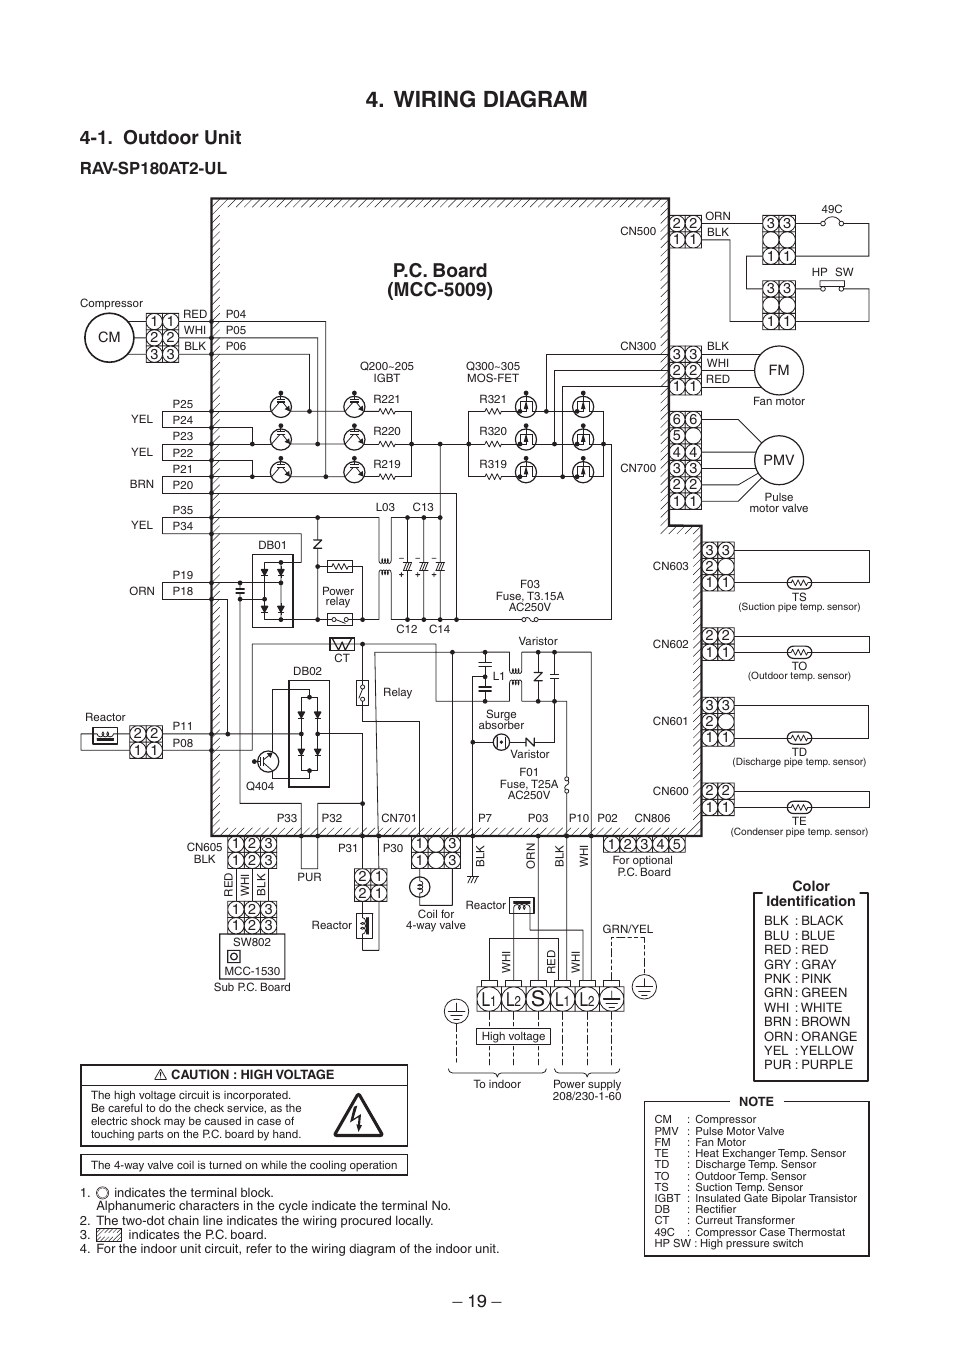 Wiring diagram, 1. outdoor unit, P.c. board (mcc-5009